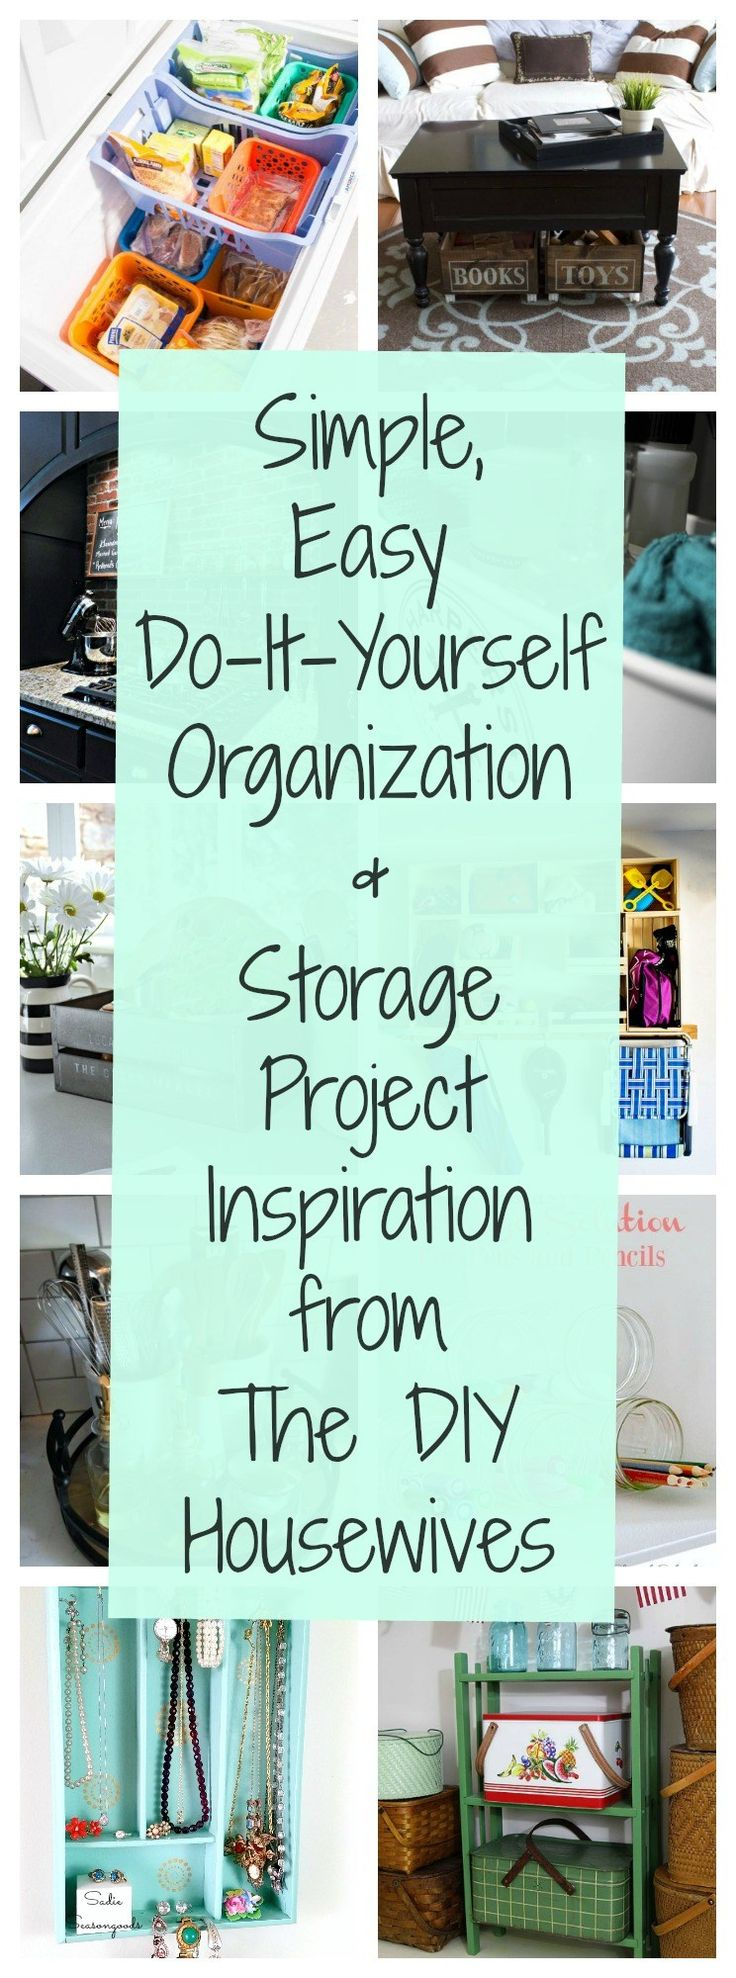 Want to create more storage solutions in your home? Or simply upgrade your organization game from room to room? These amazing do-it-yourself organizing and storage ideas from The DIY Housewives will help you get orderly from your garage, to your freezer; from office supplies to jewelry; and from your kitchen to your kid's toys! Check it out on Sadie Seasongoods / www.sadieseasongoods.com